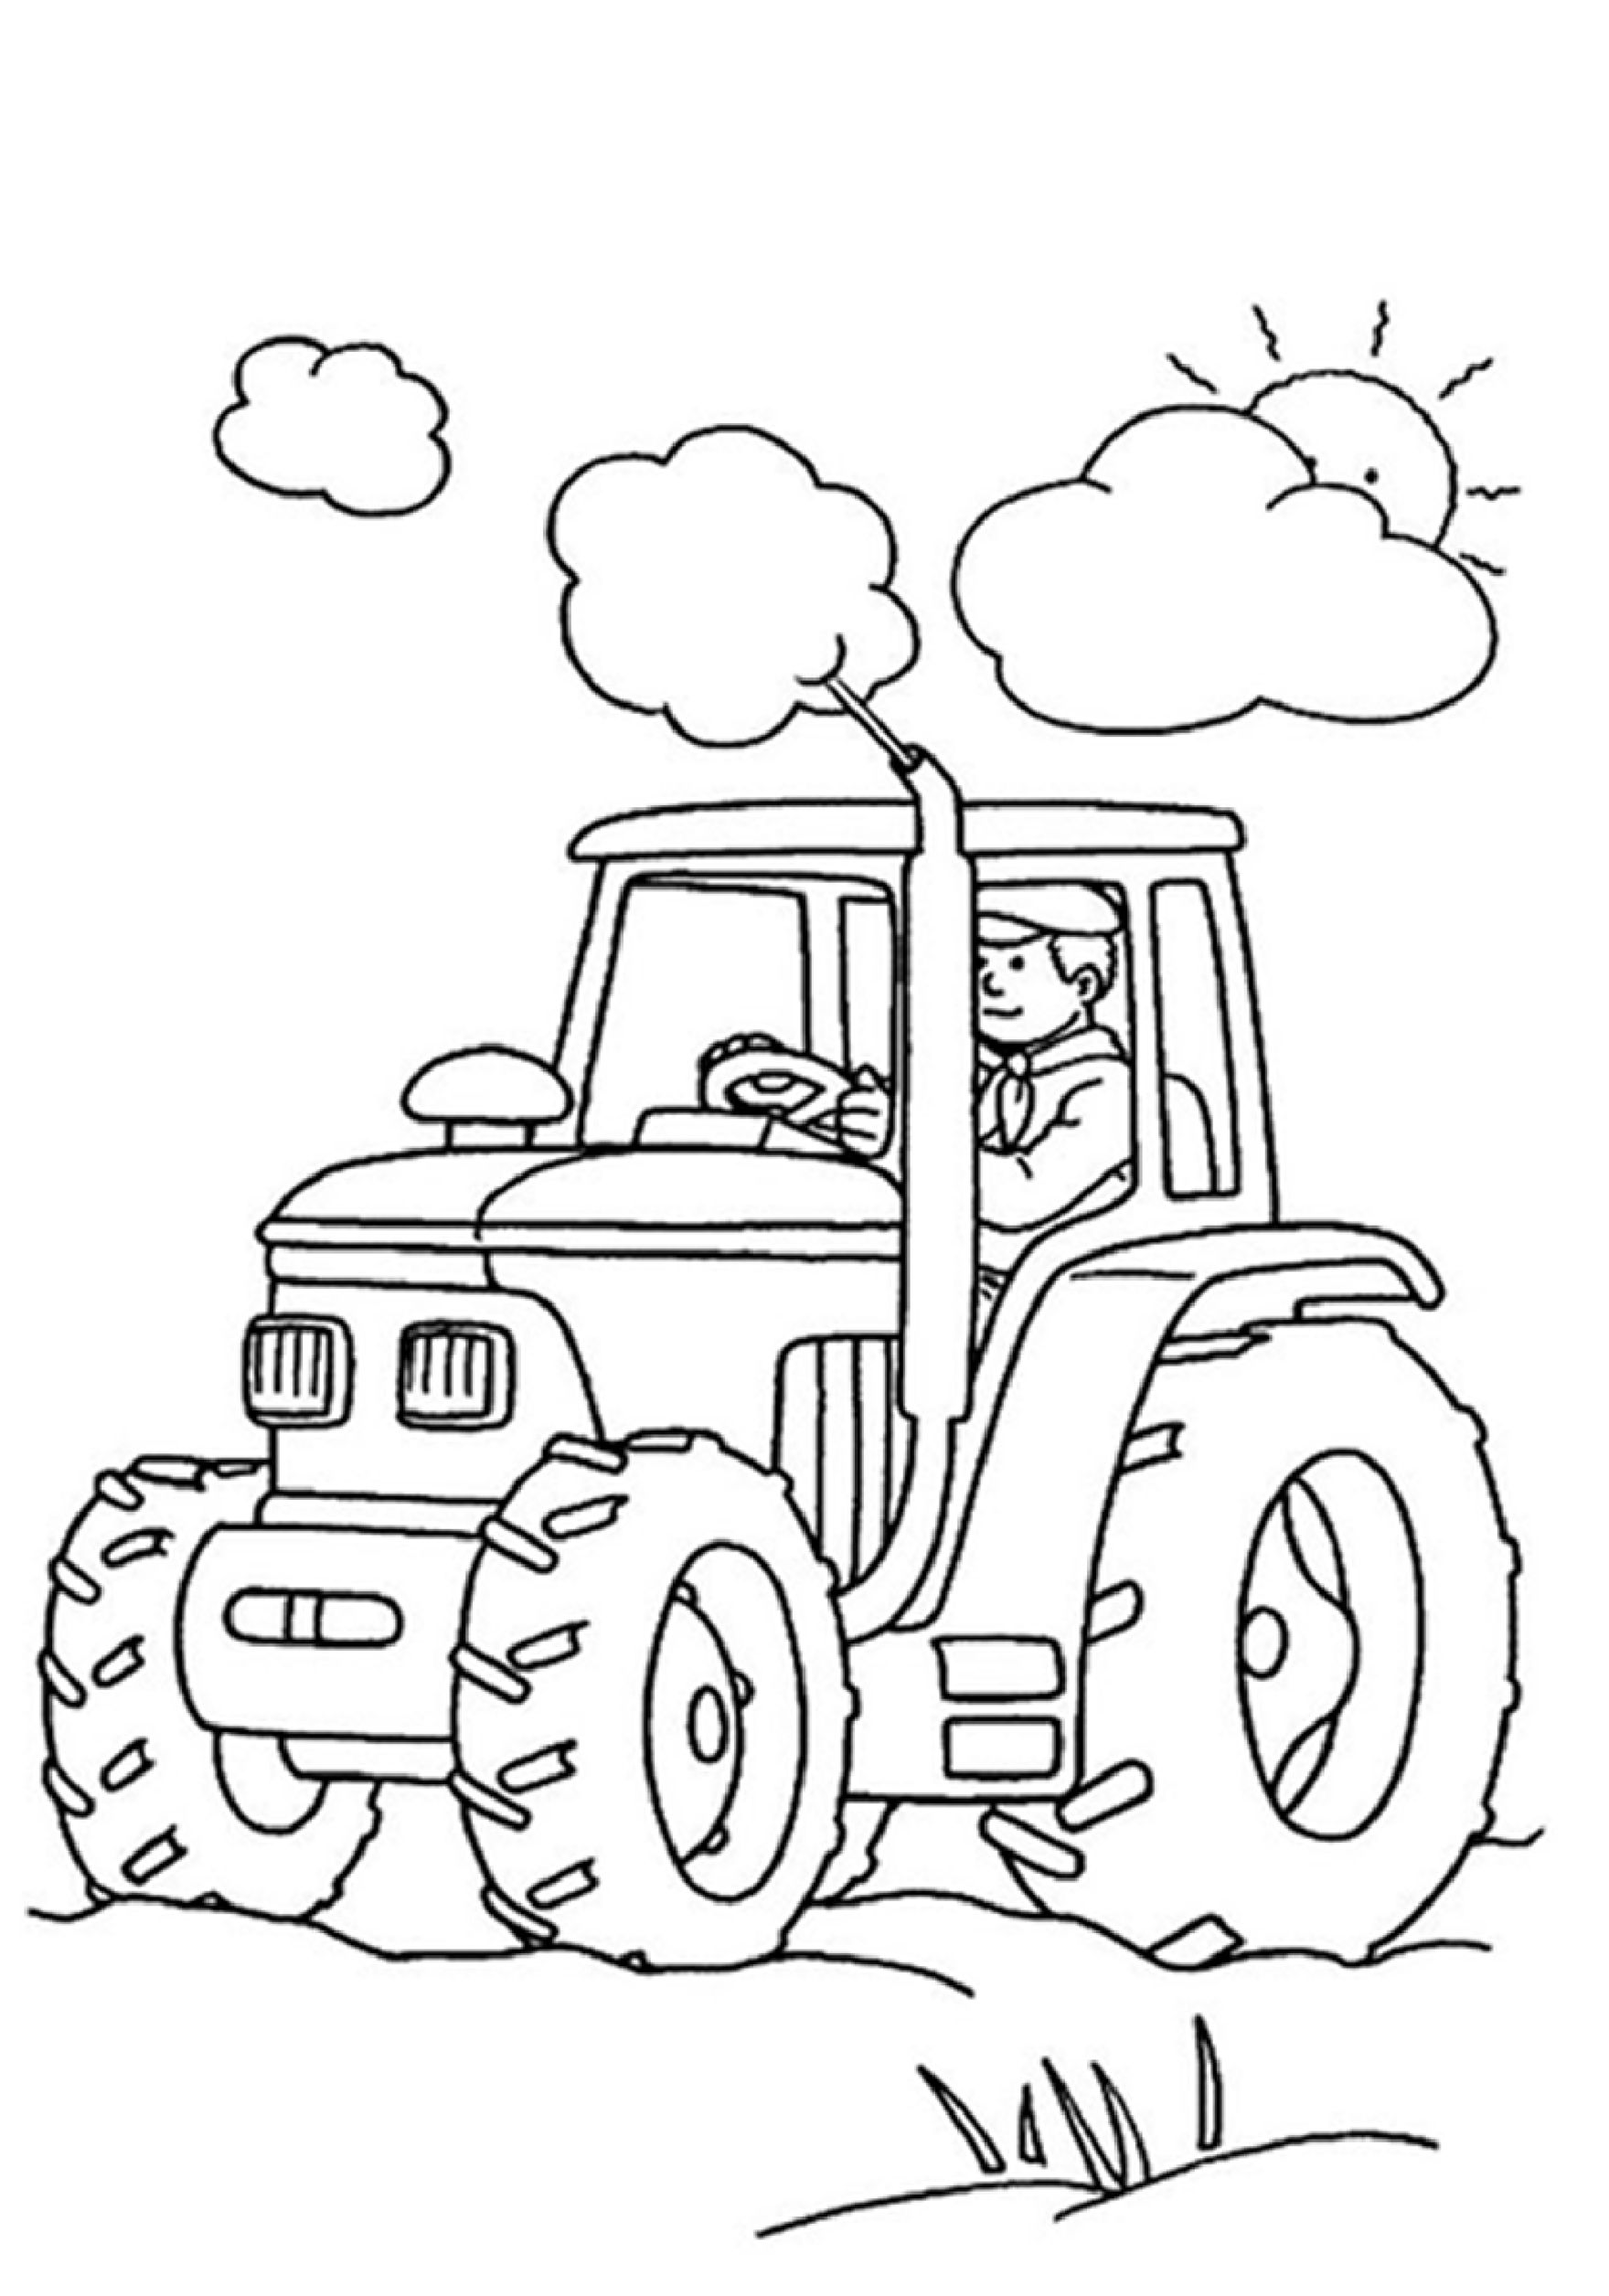 Knowledge Free Printable Coloring Pages For Kids Resume Format ...